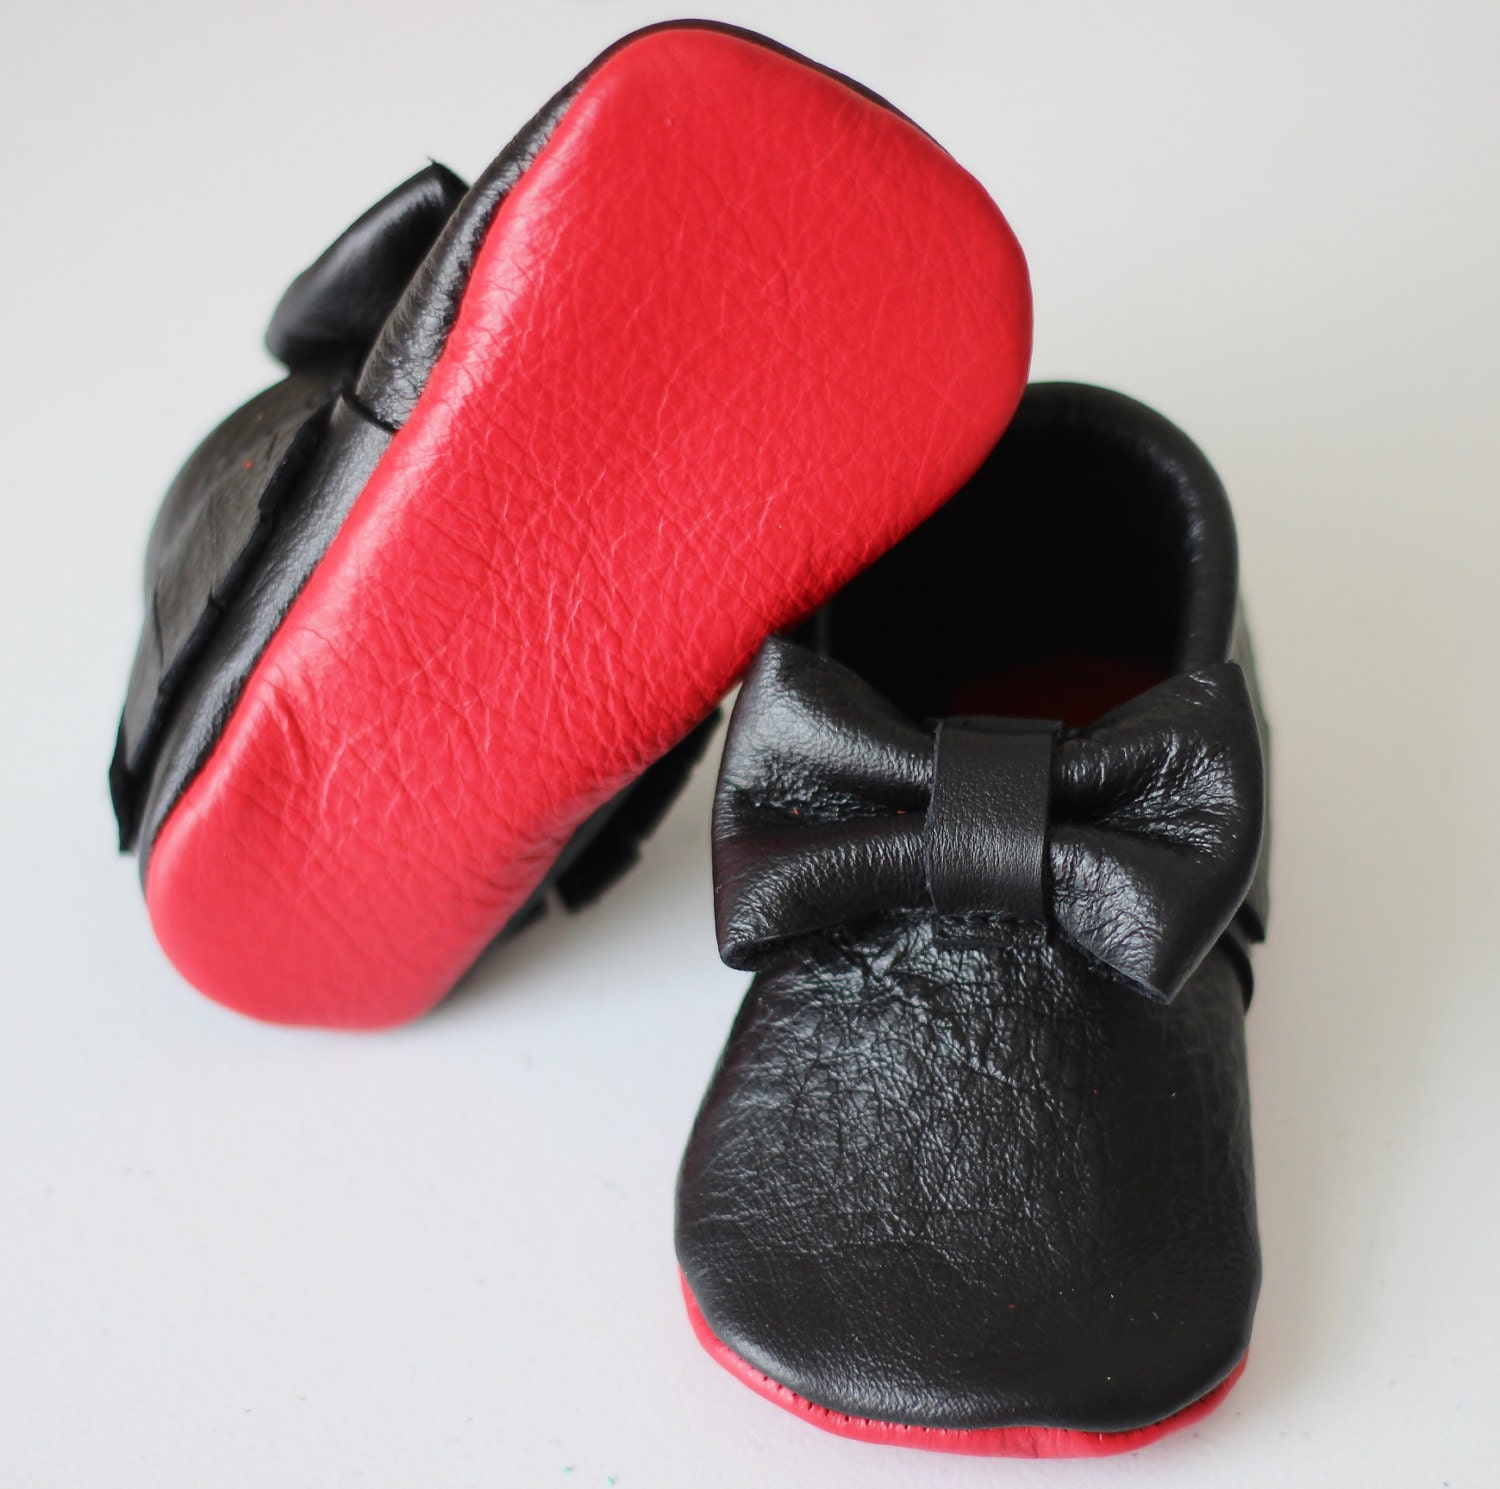 Red Bottom Louboutin Inspired Leather Baby by LittleBeanFootwear